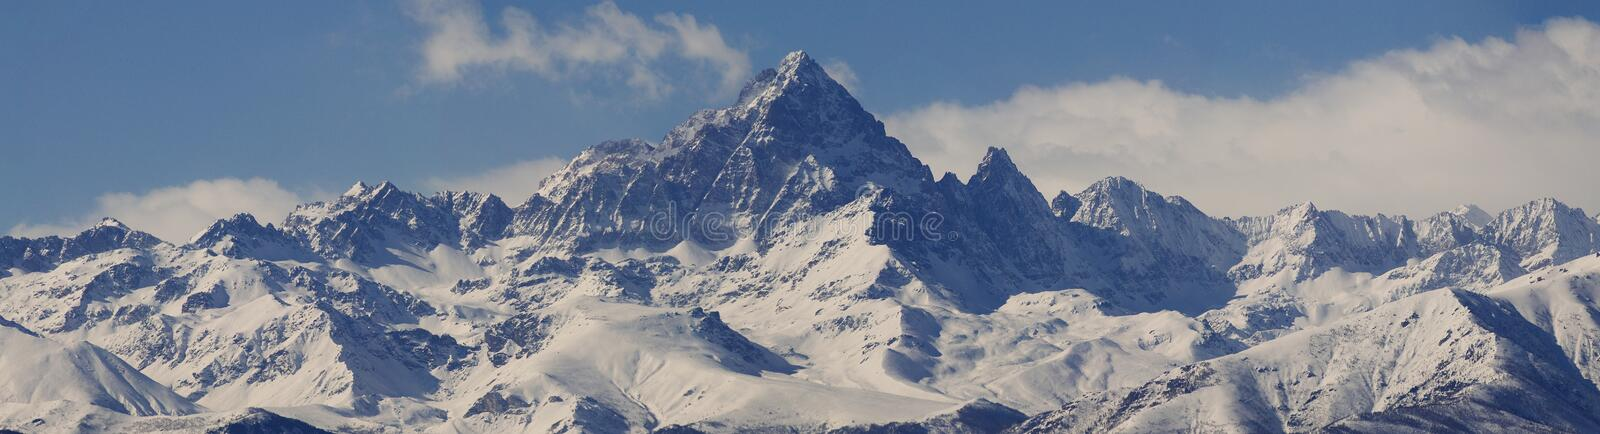 Monviso's panoramic view royalty free stock image